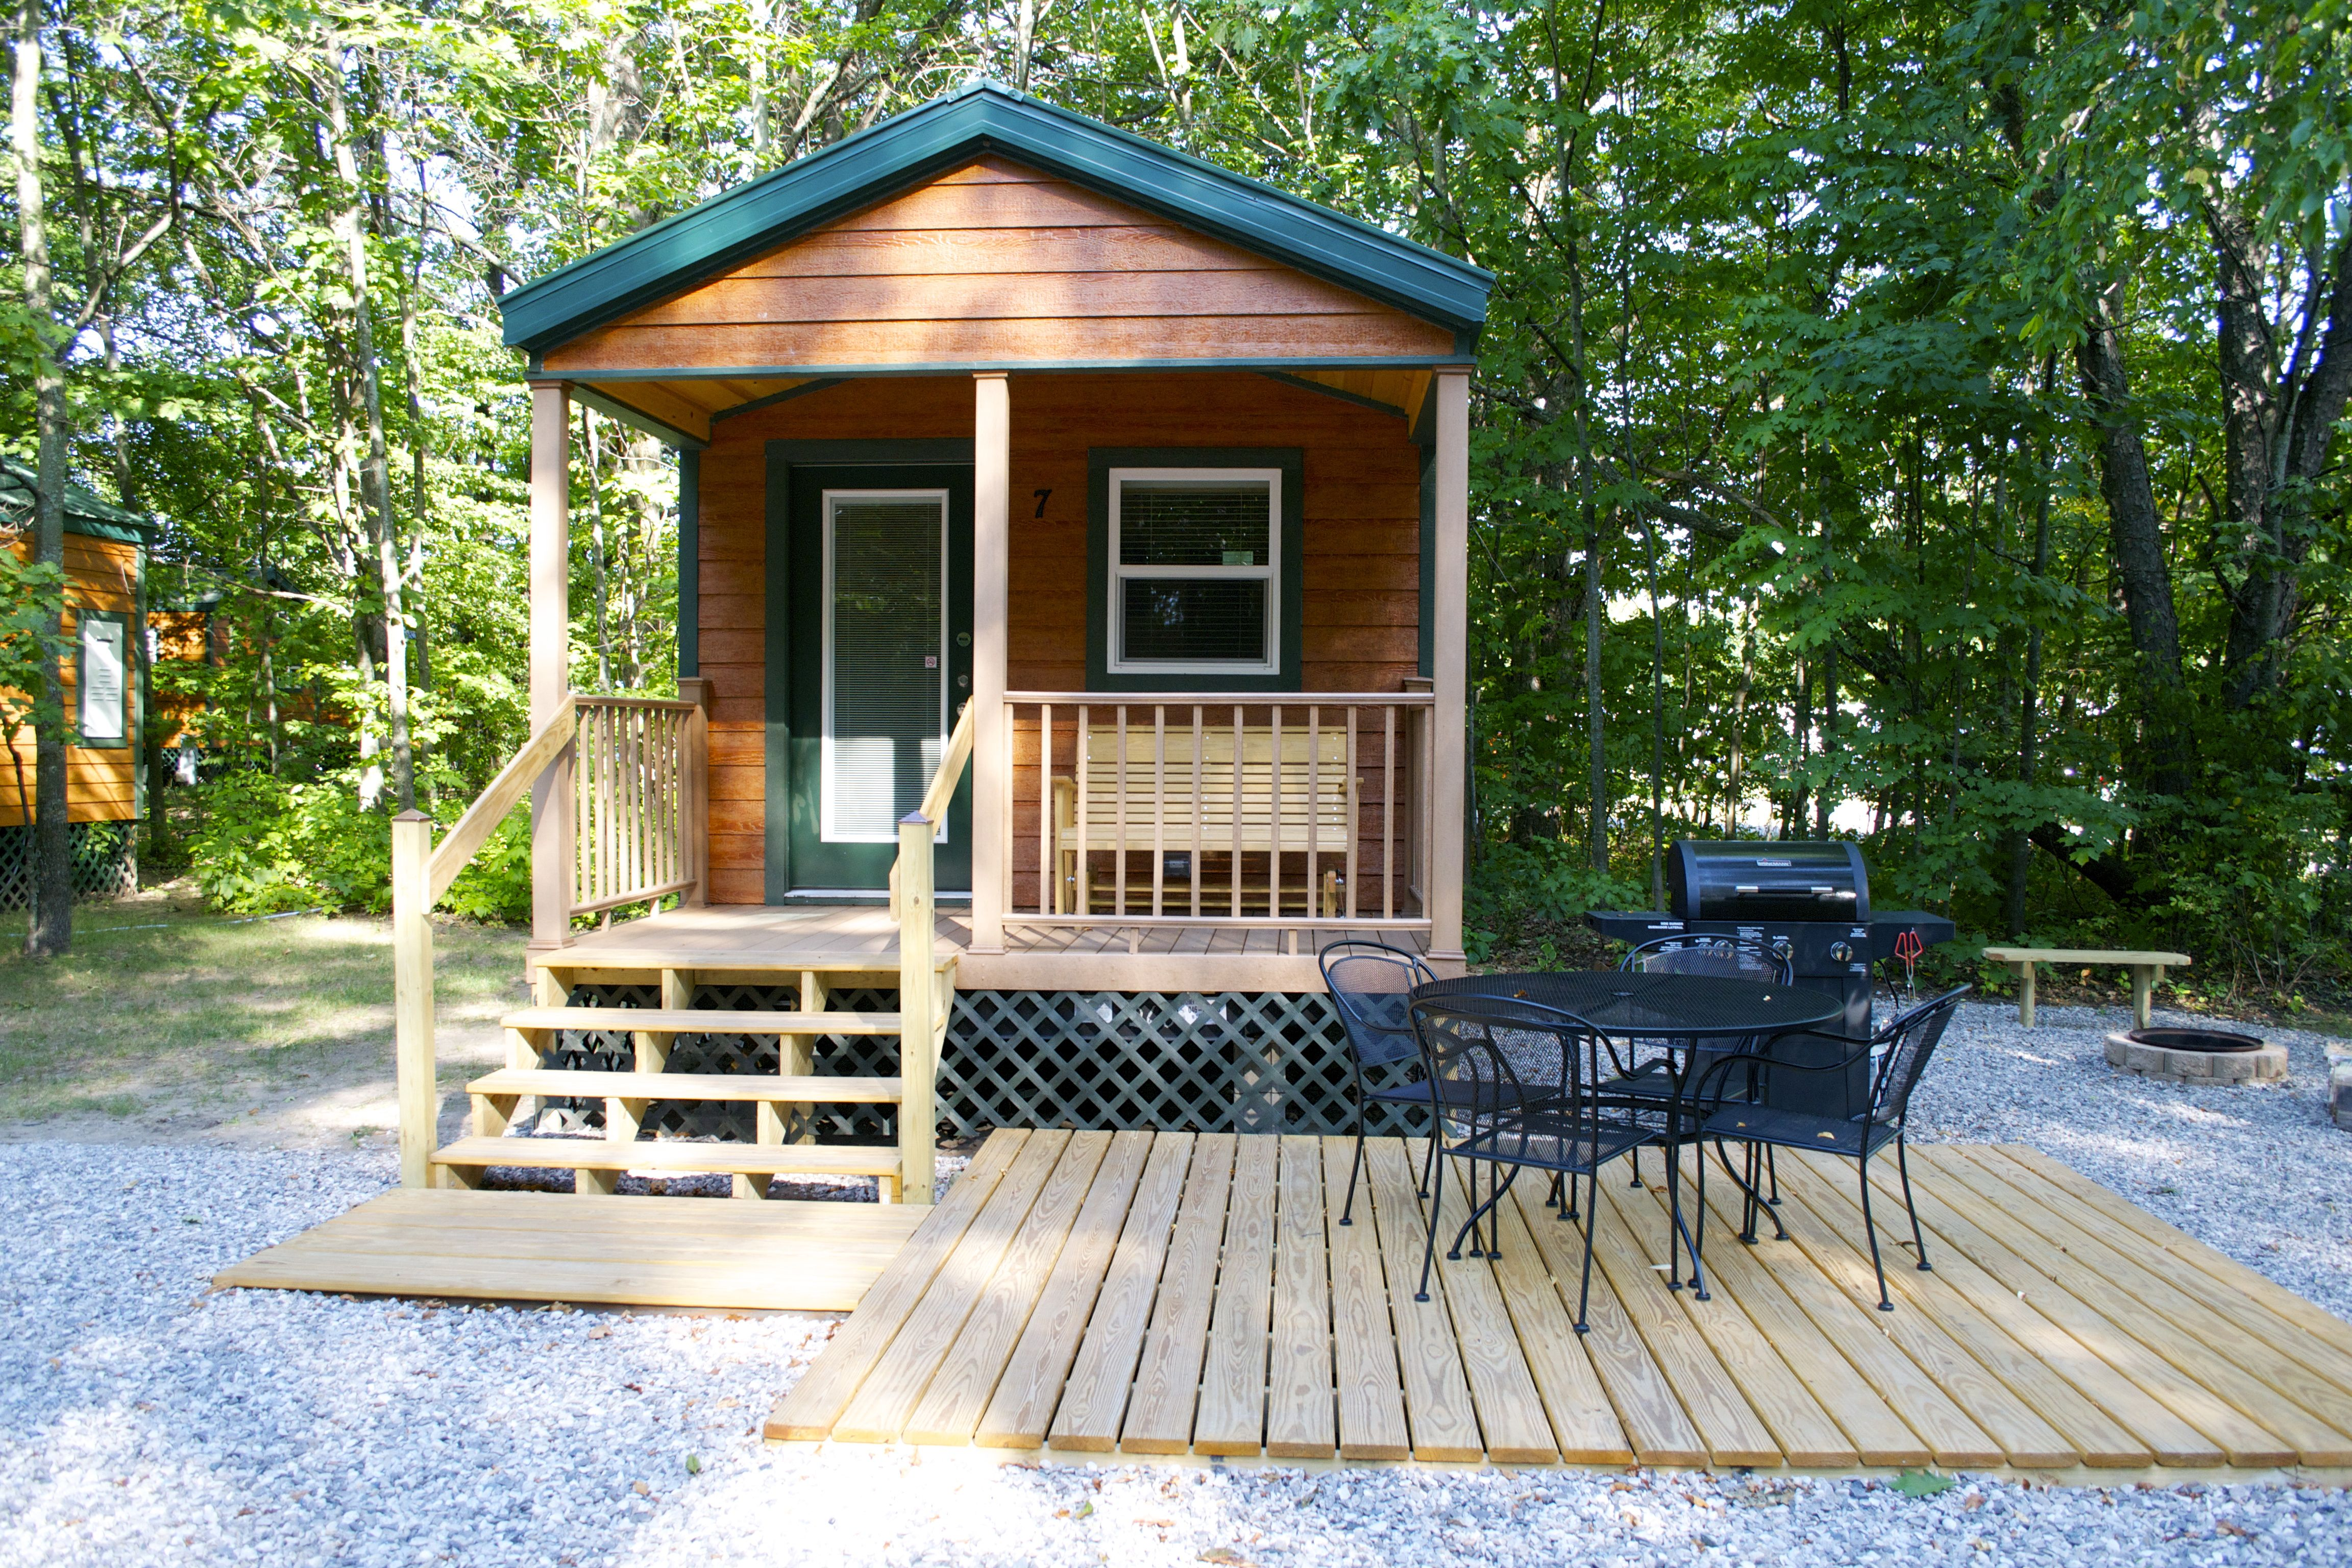 michigan cottages beautiful romantic rent scenery rentals hotels cabins traverse relaxing nce southwest cabin clear northern for mi lake place and re city along craigslist vacation getaways in at